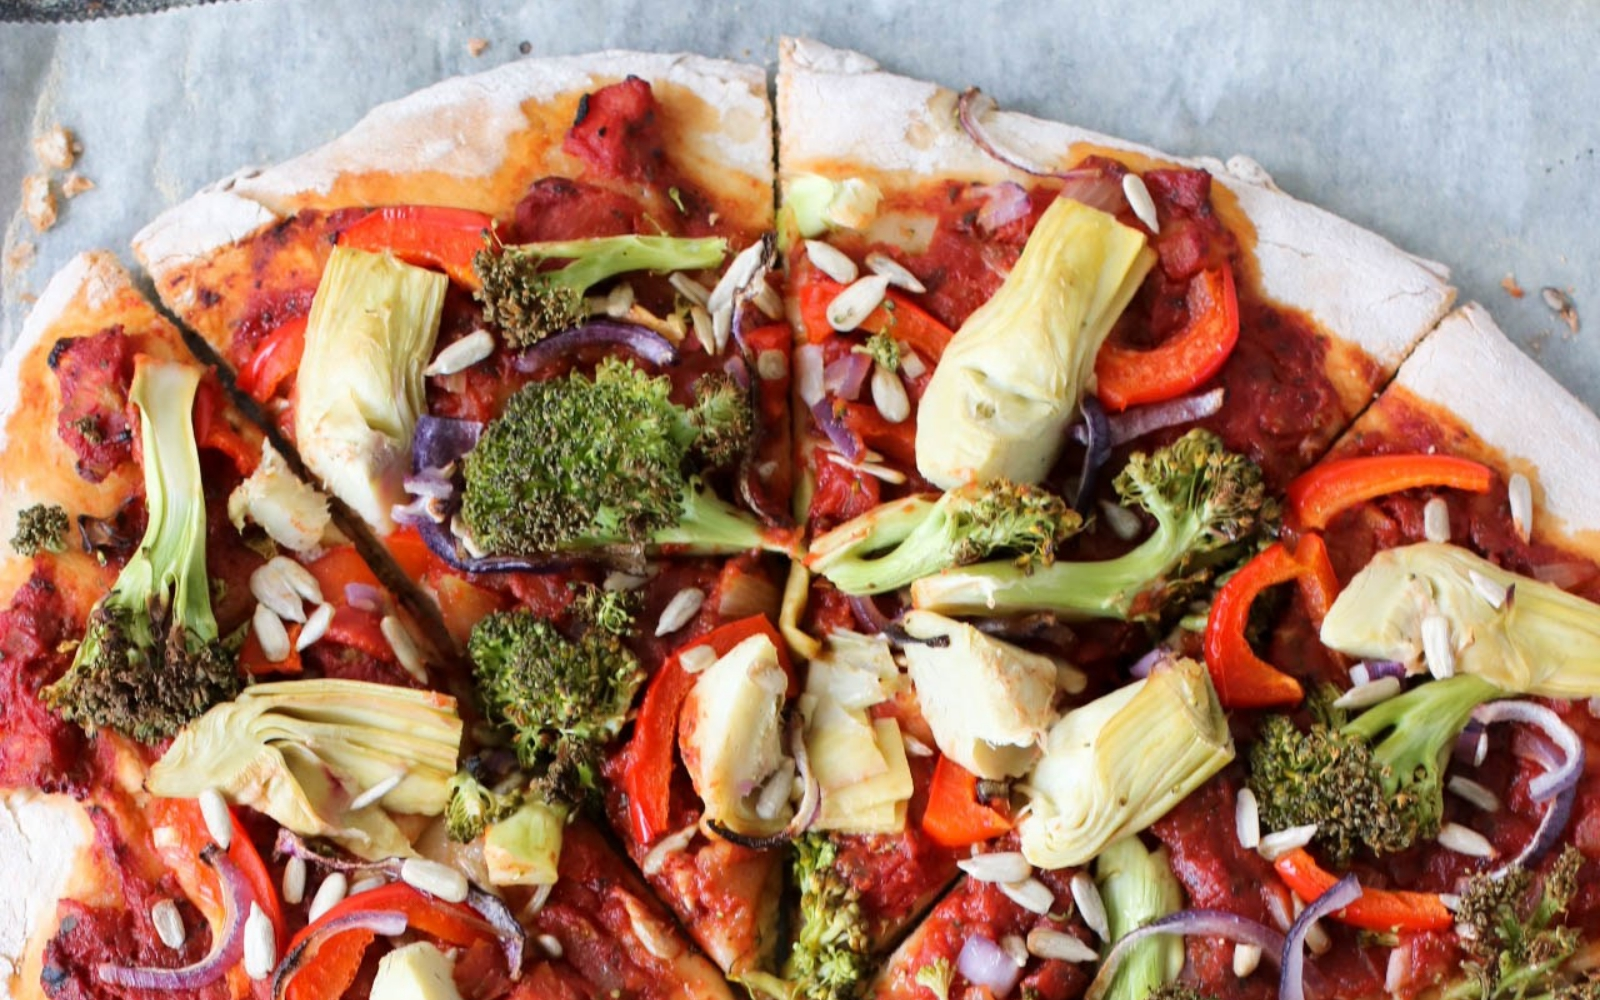 Vegan Wholesome Pizza With Broccoli and Artichoke